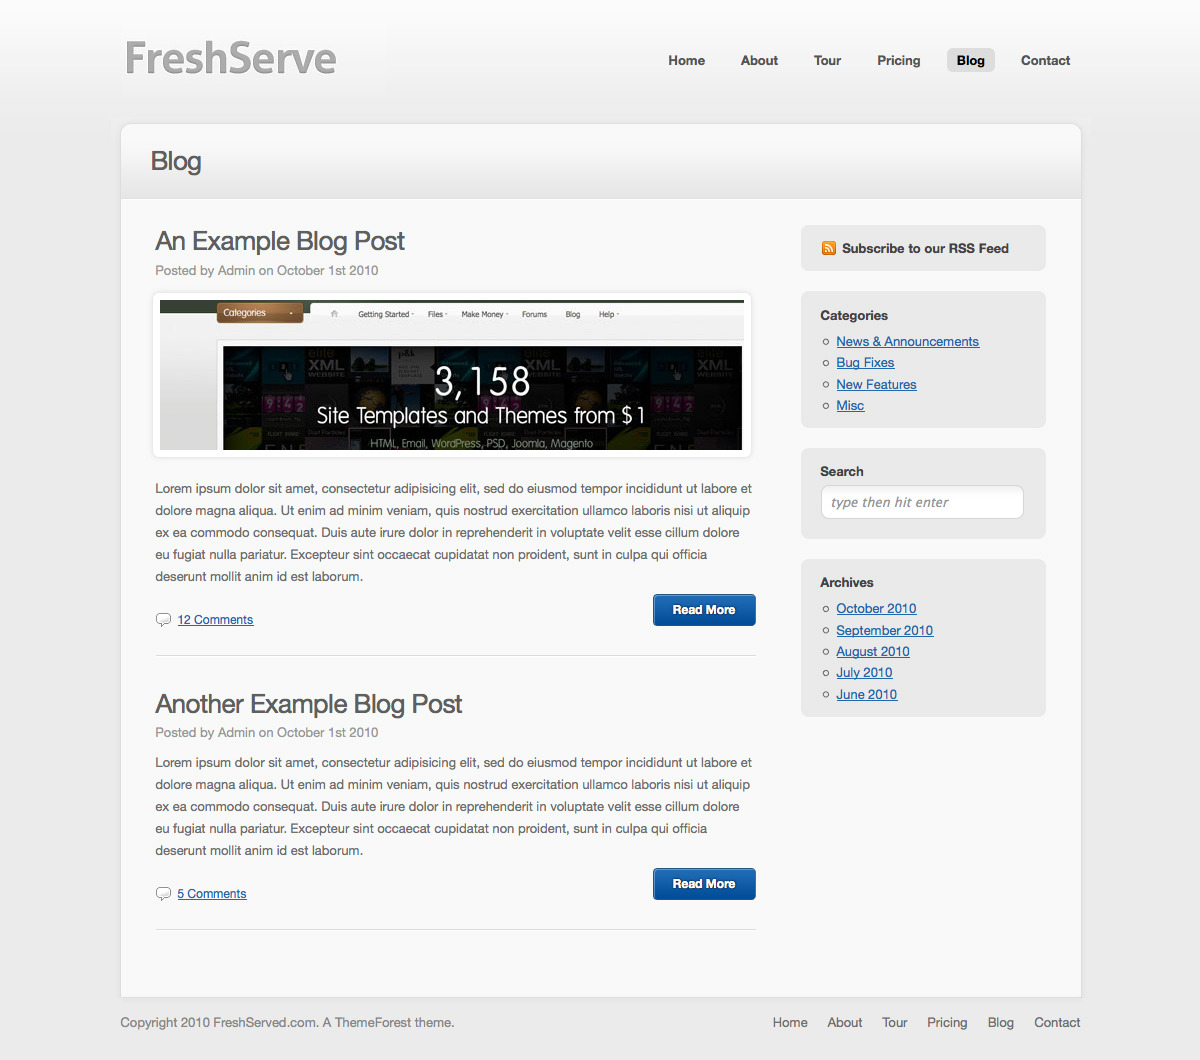 FreshServe - A Web App / SaaS Wordpress Theme - Blog page